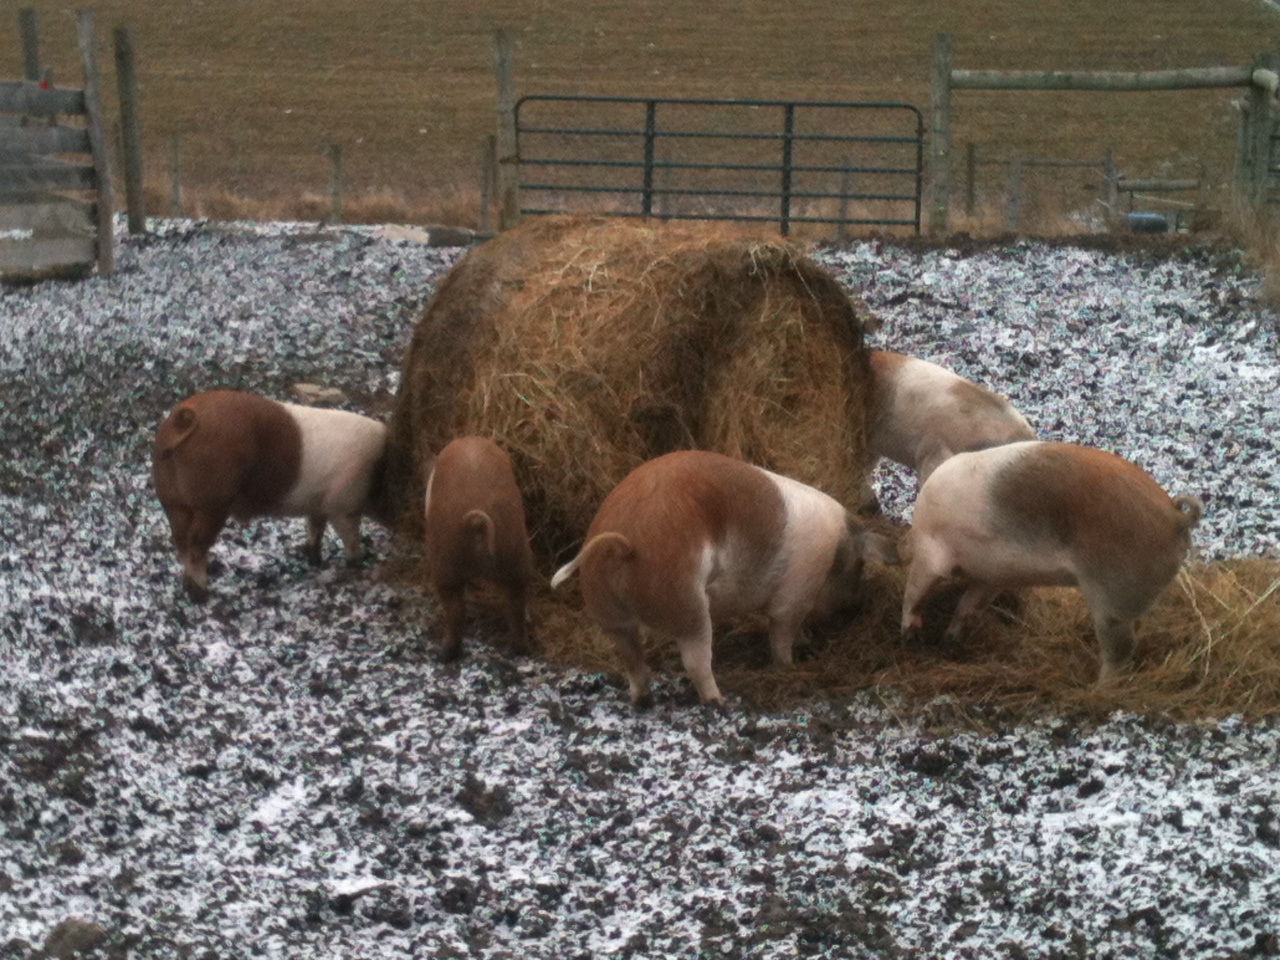 Pigs eating Round Bale.JPG?1405812644906